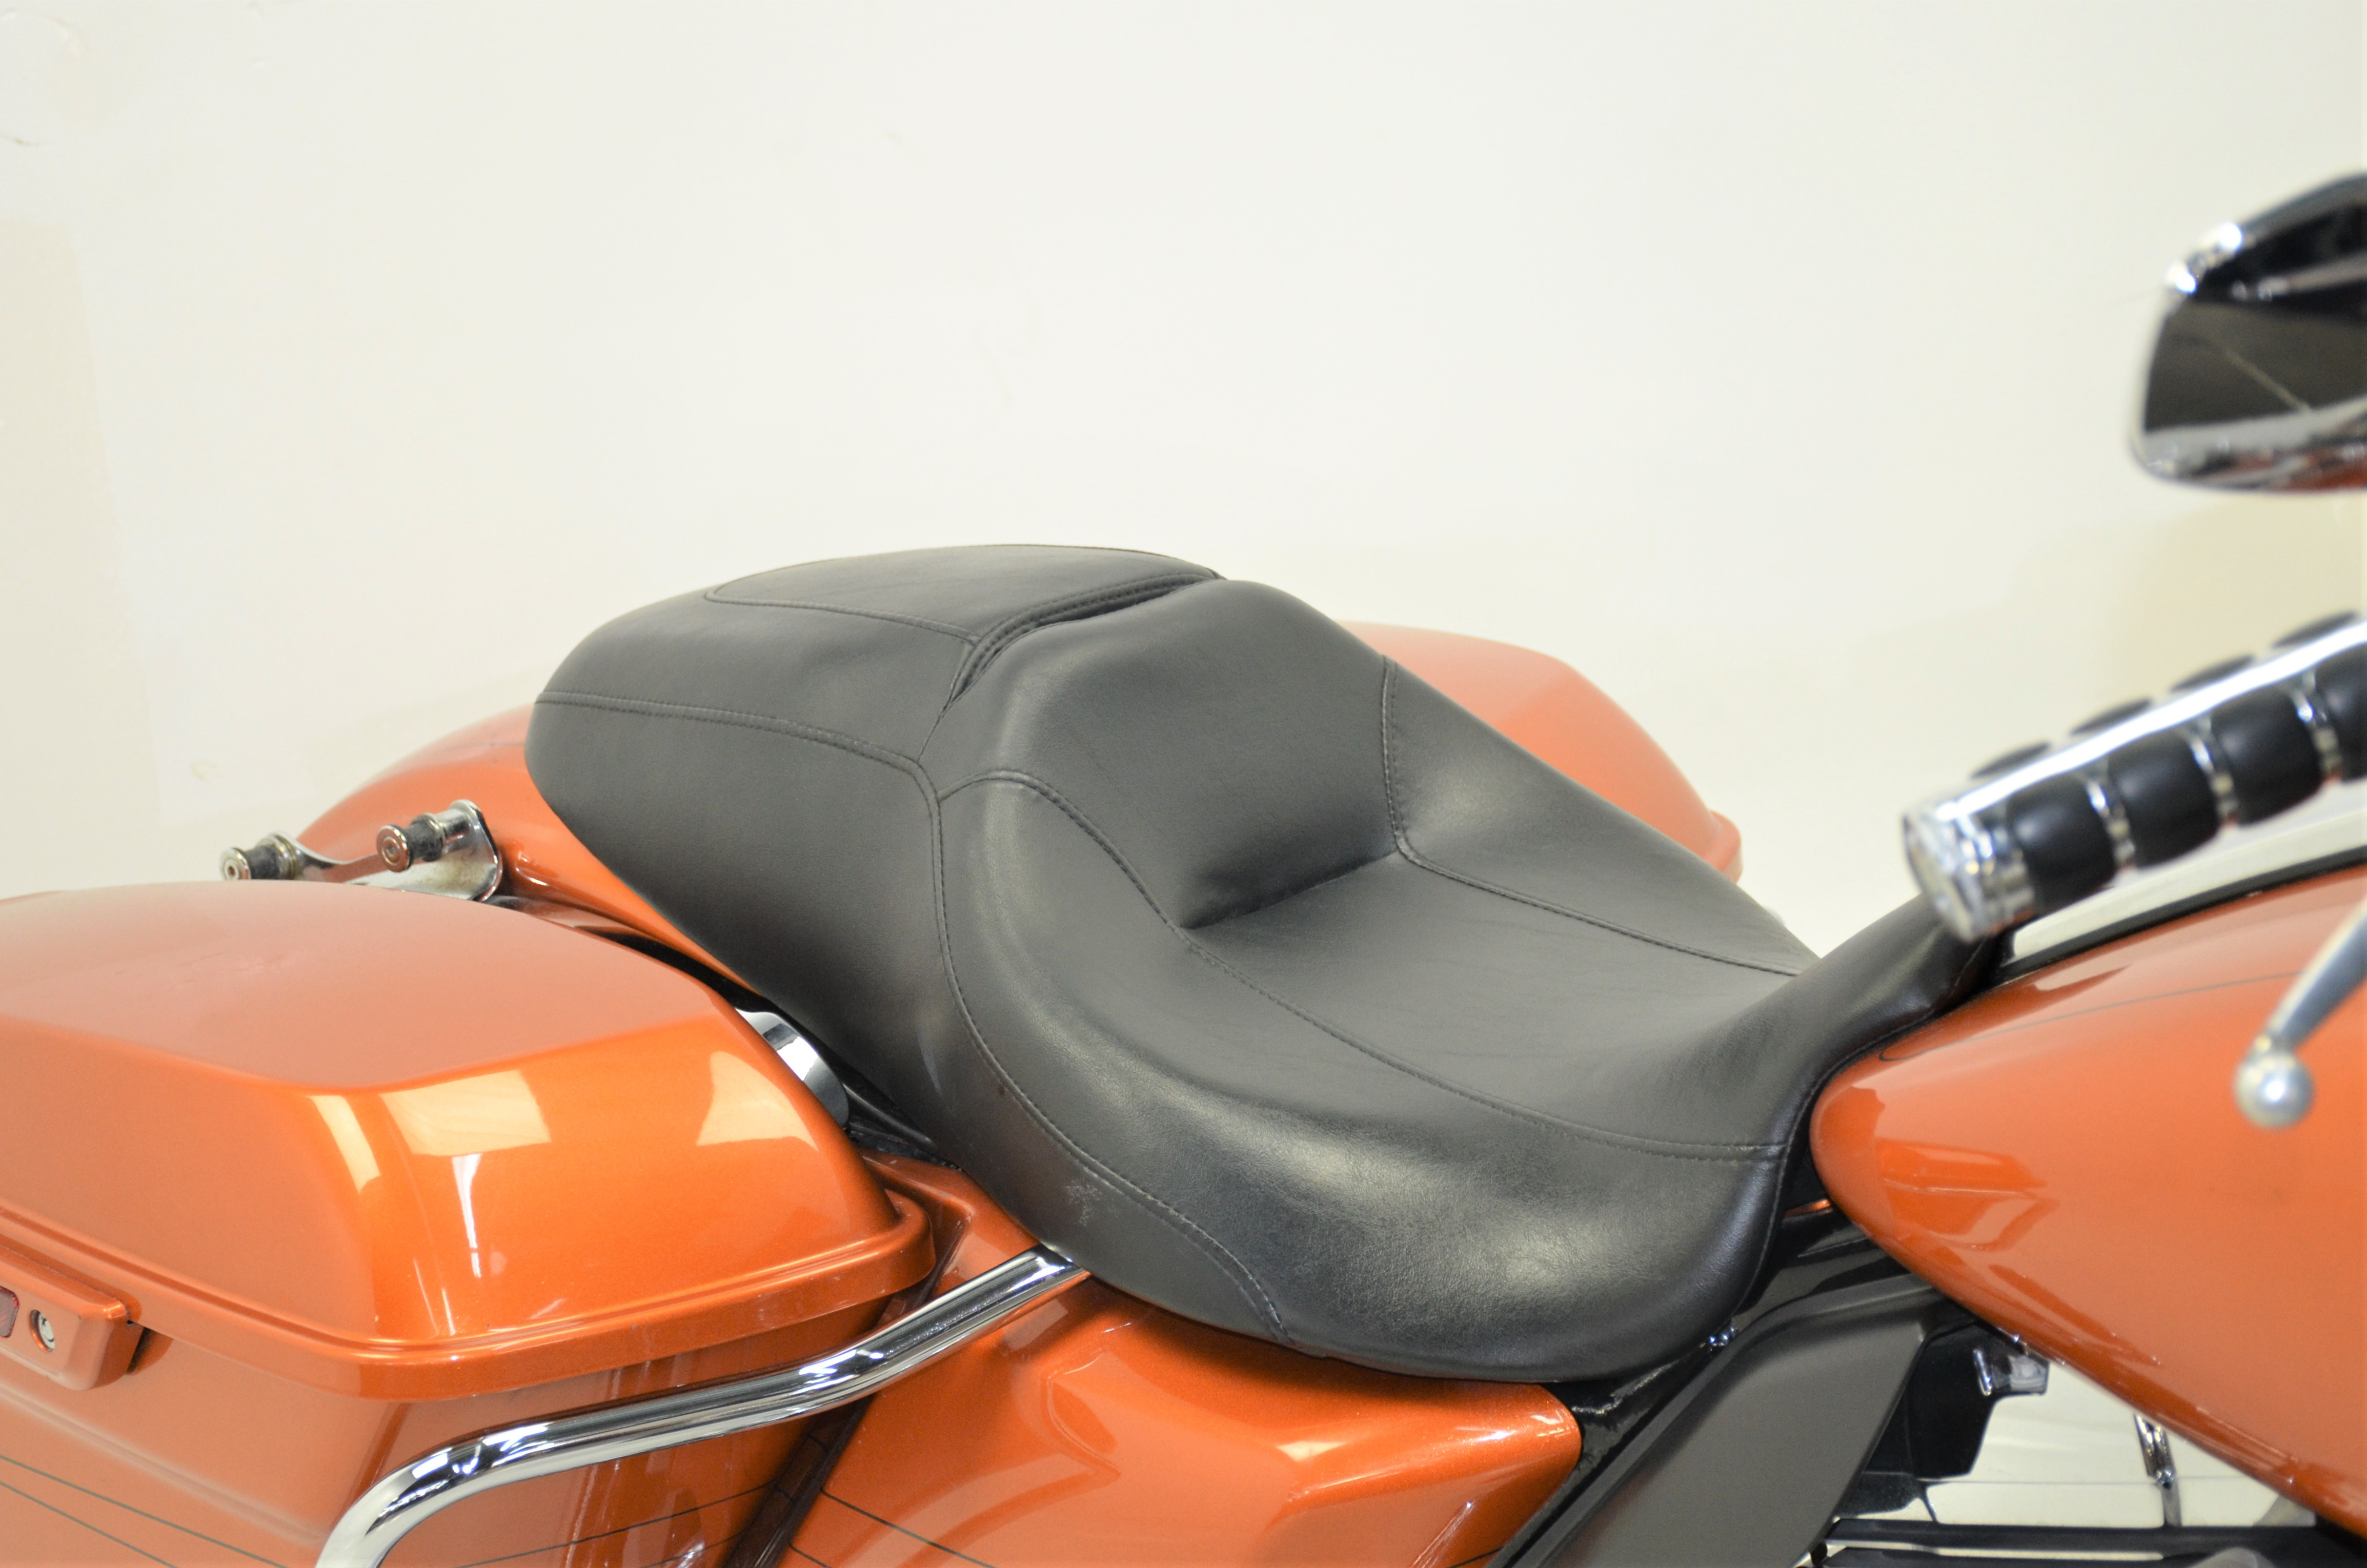 Pre-Owned 2015 Harley-Davidson Street Glide Special